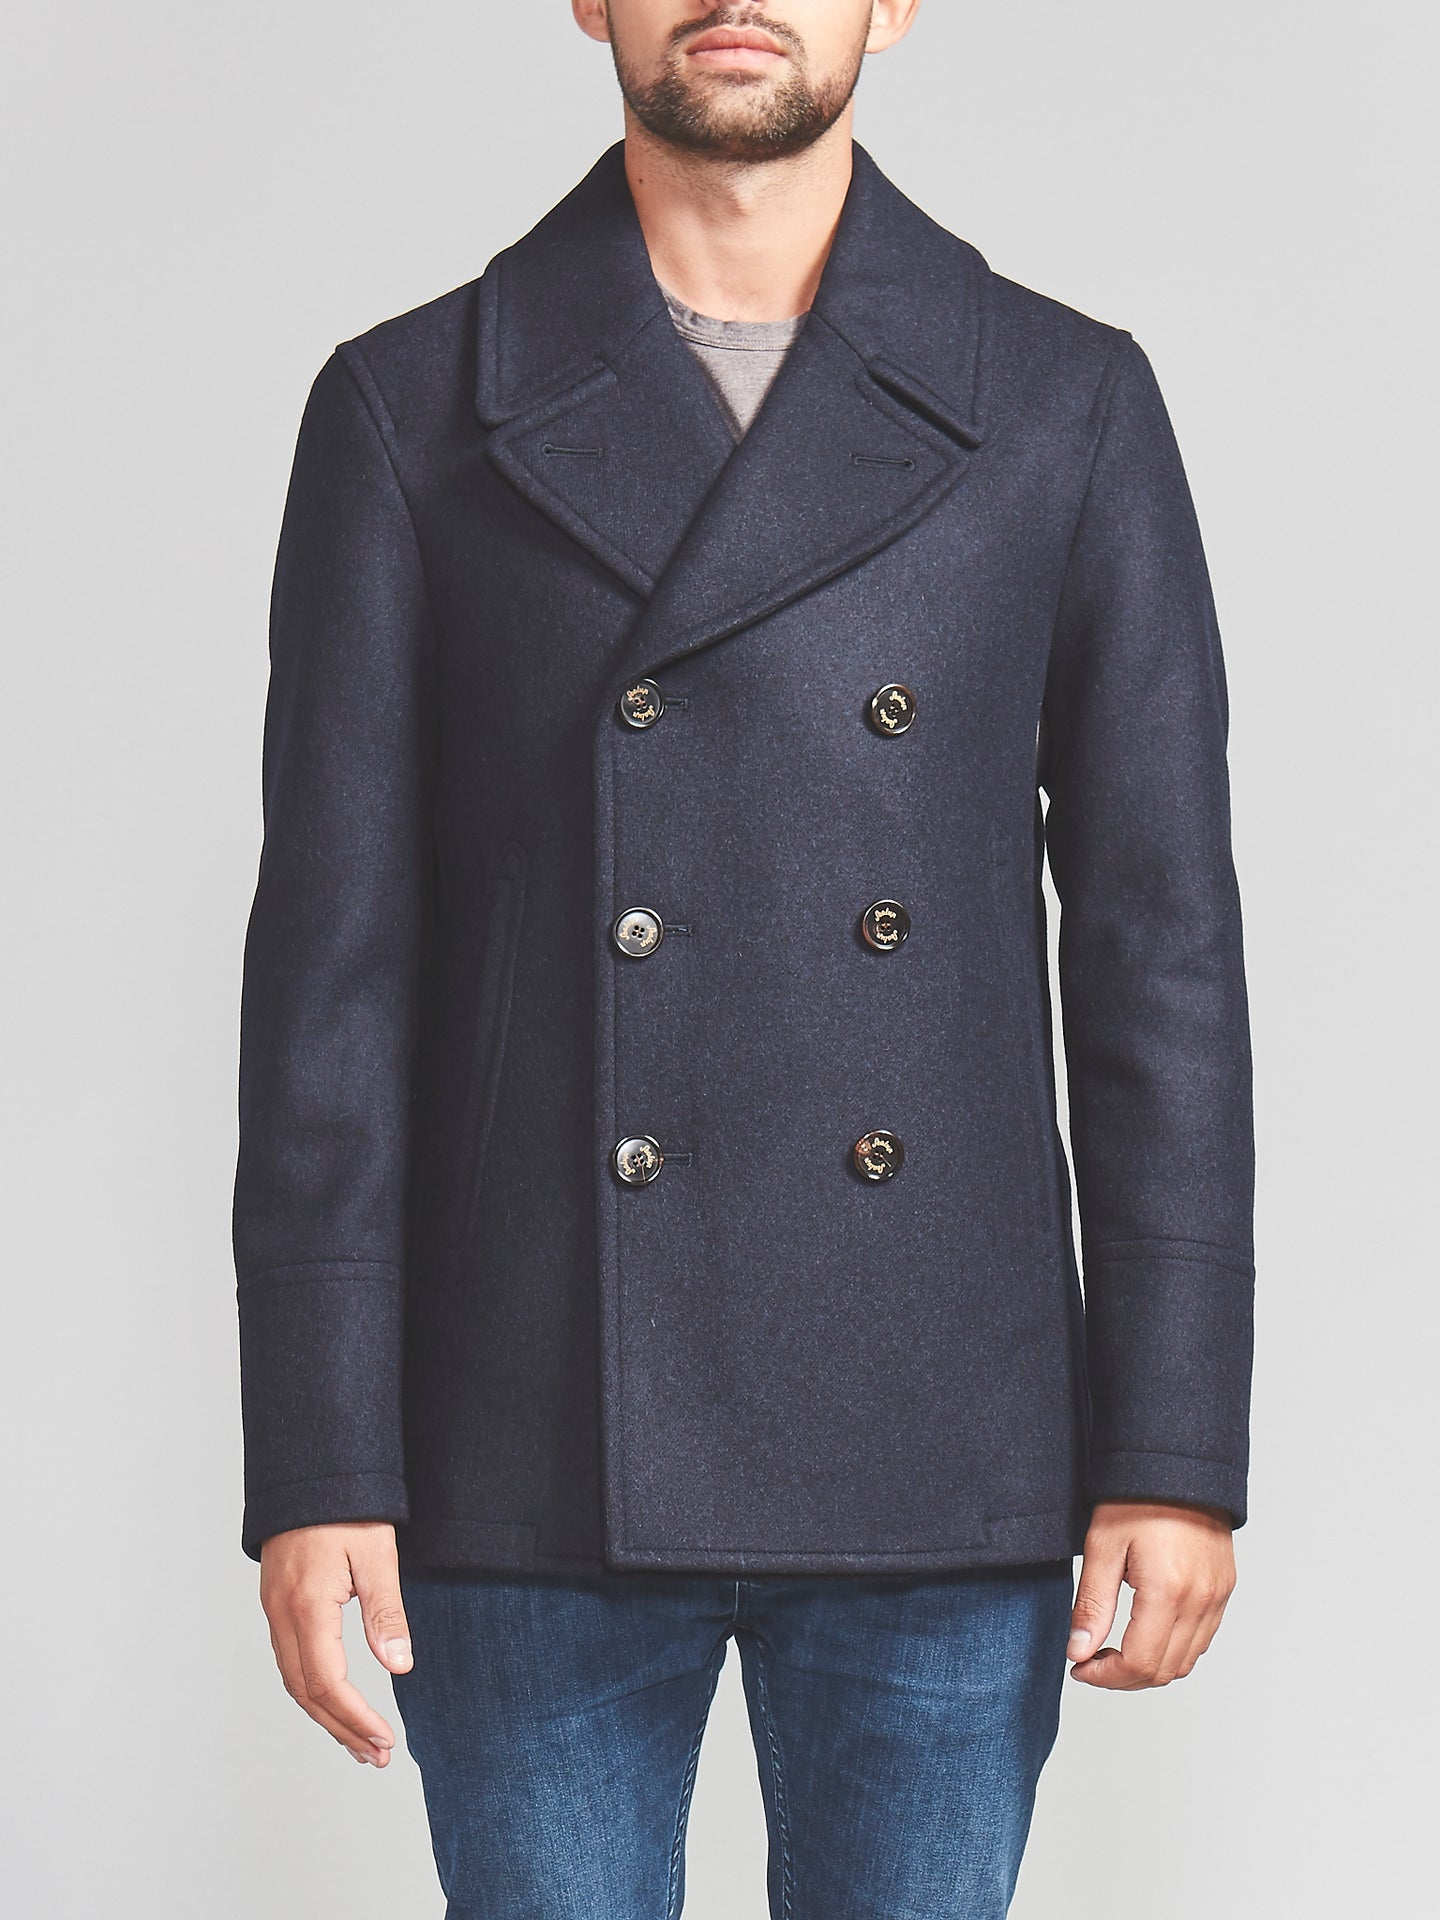 Sealup Peacoat (Navy)